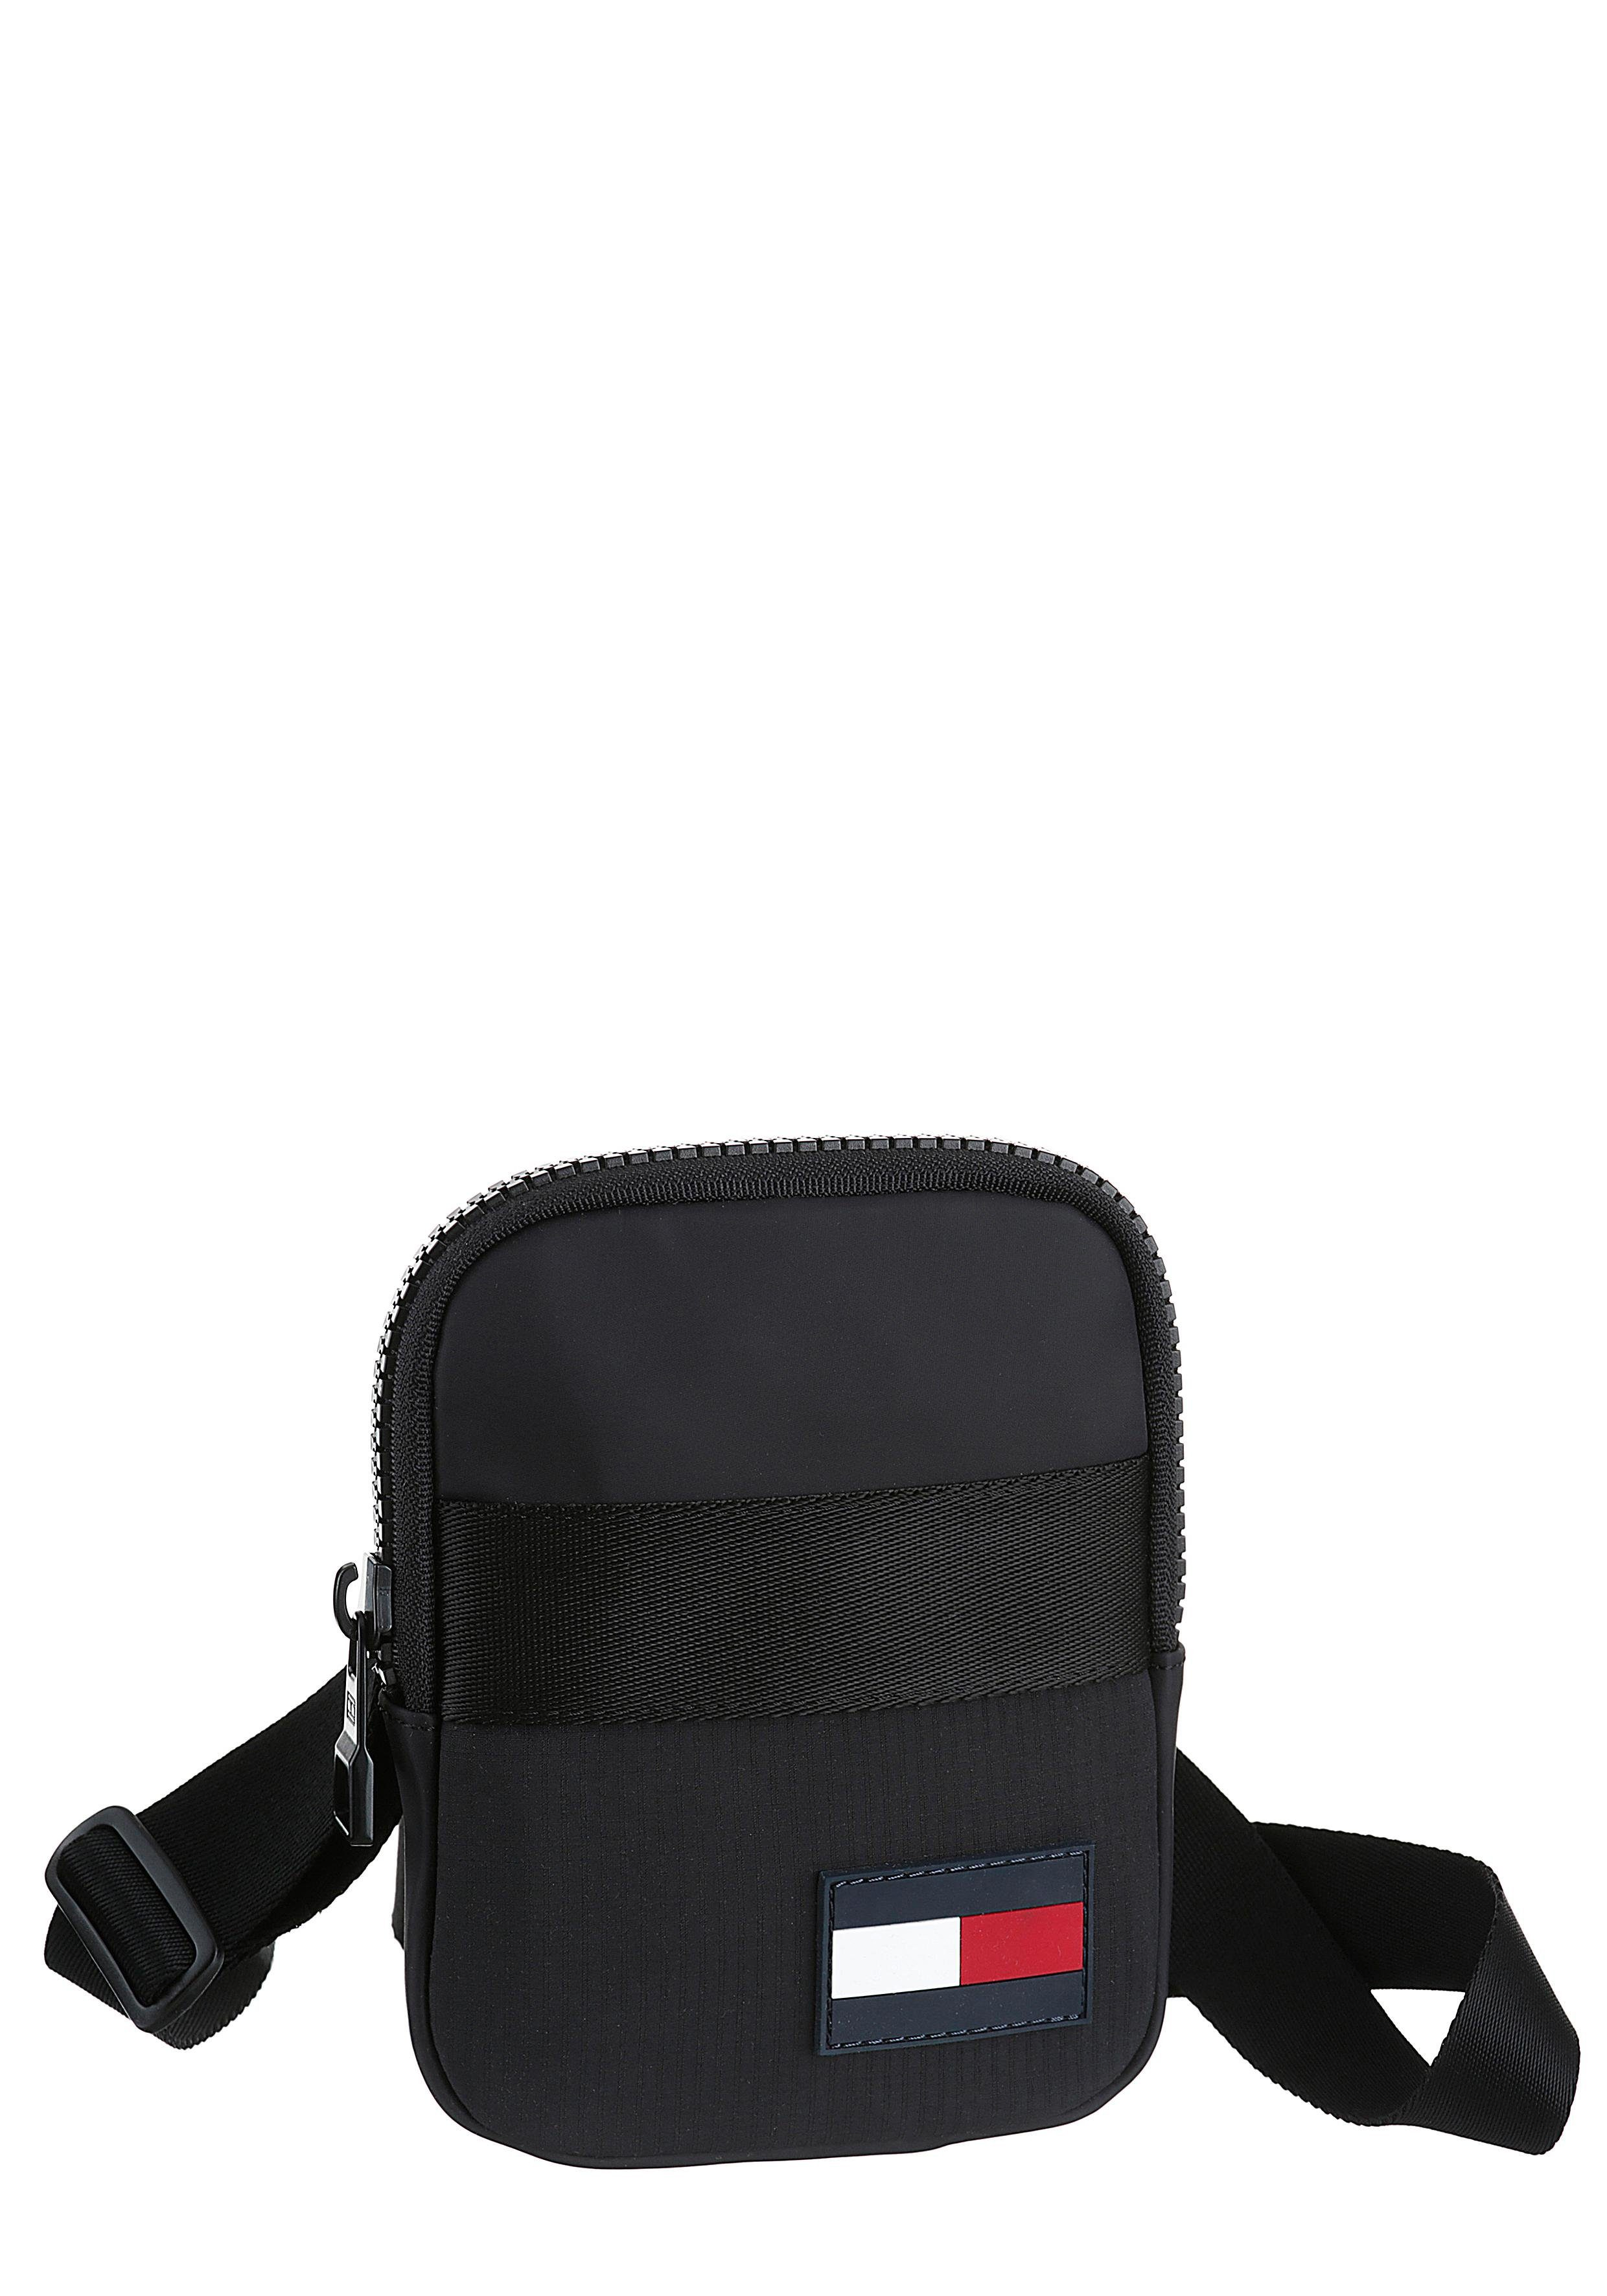 TOMMY HILFIGER Umhängetasche »TOMMY COMPACT XOVER SPORTS TAPE«, im Mini Format